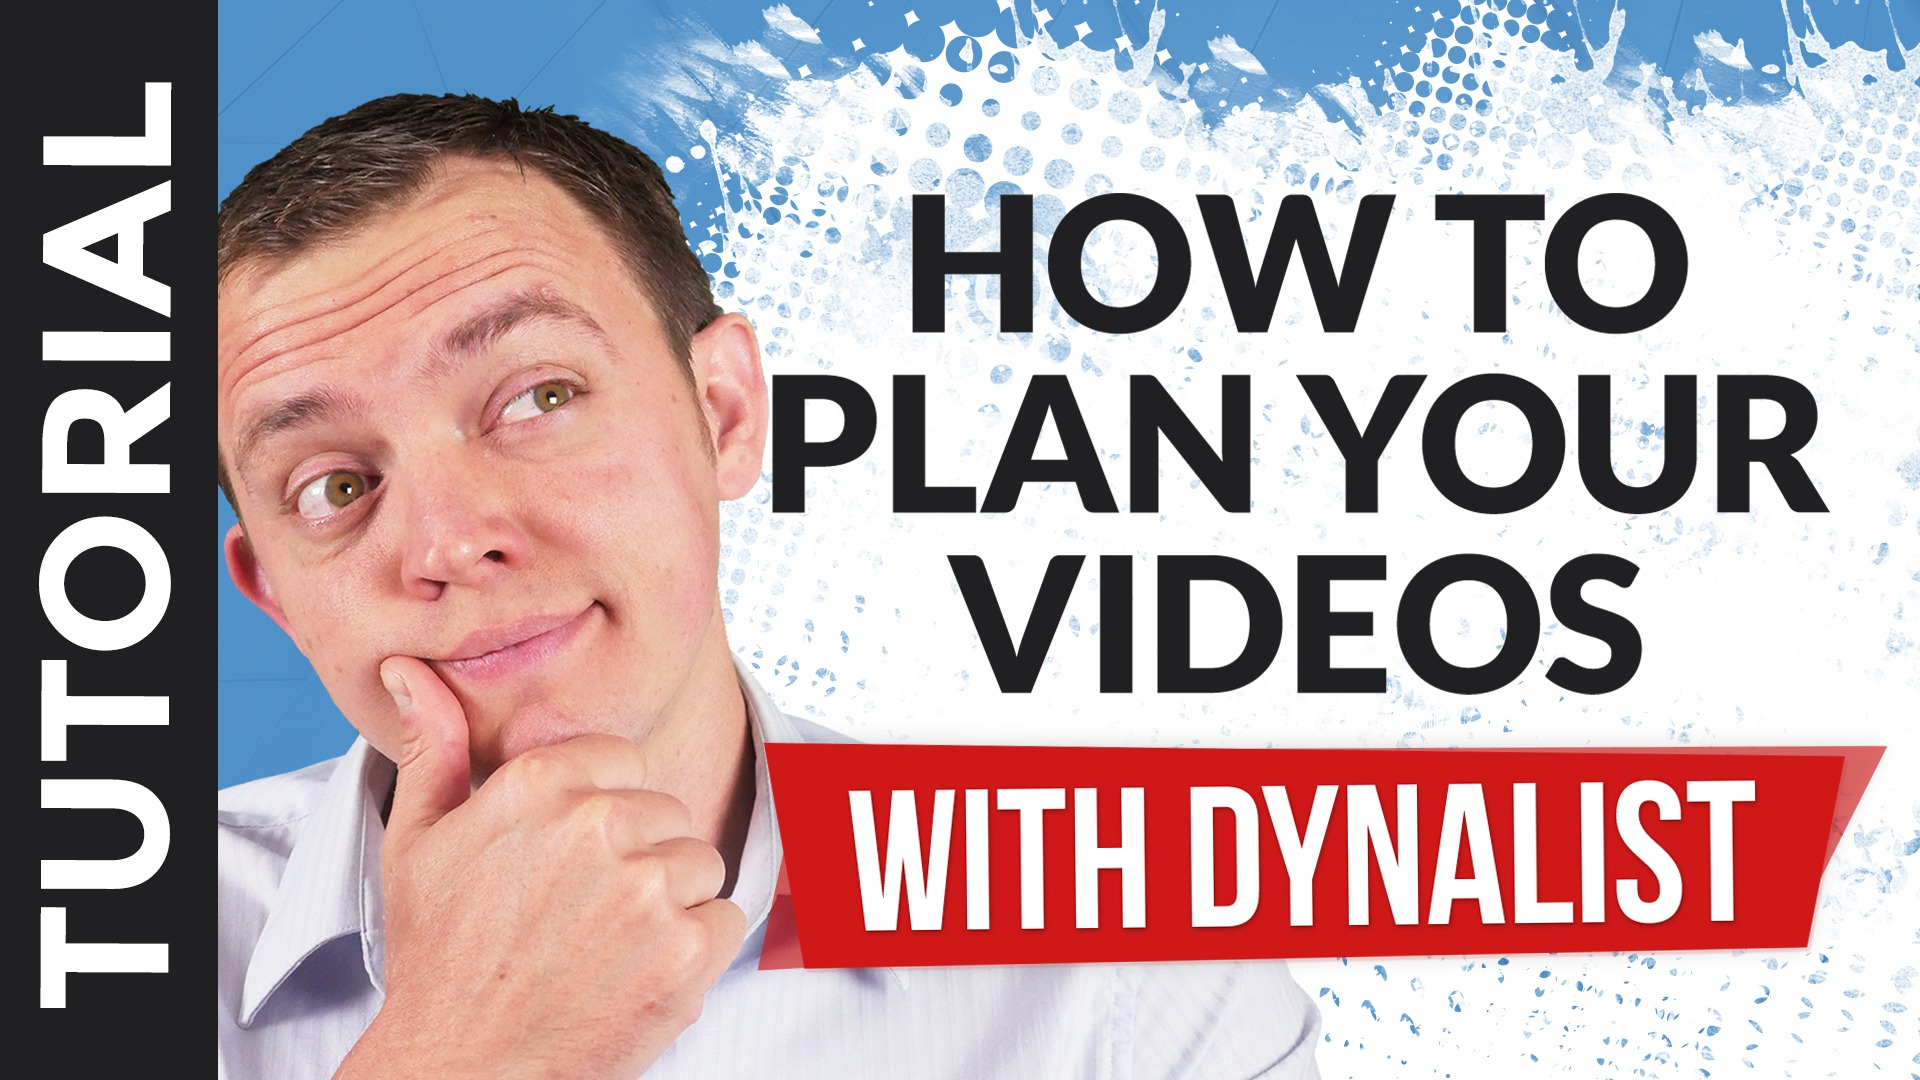 How to Plan Your List of Videos for YouTube Using Dynalist